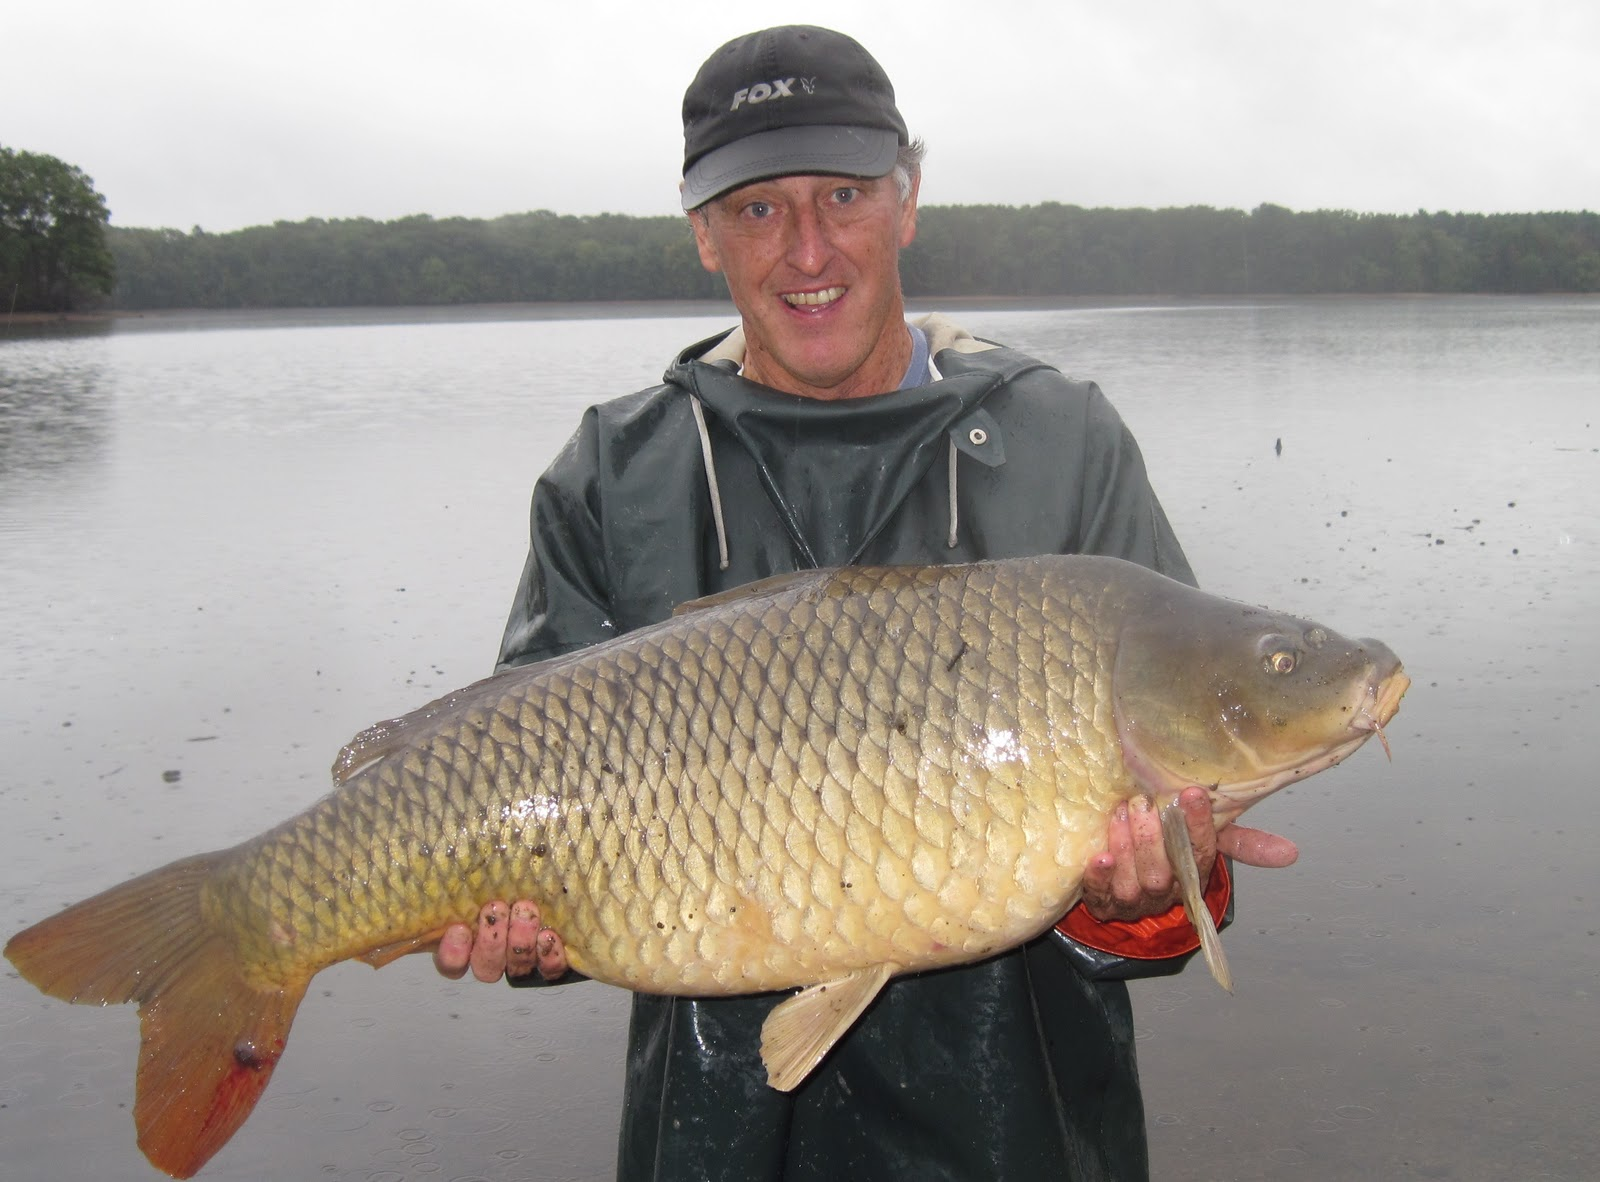 Rhode island carp fishing potential state record released for State record fish